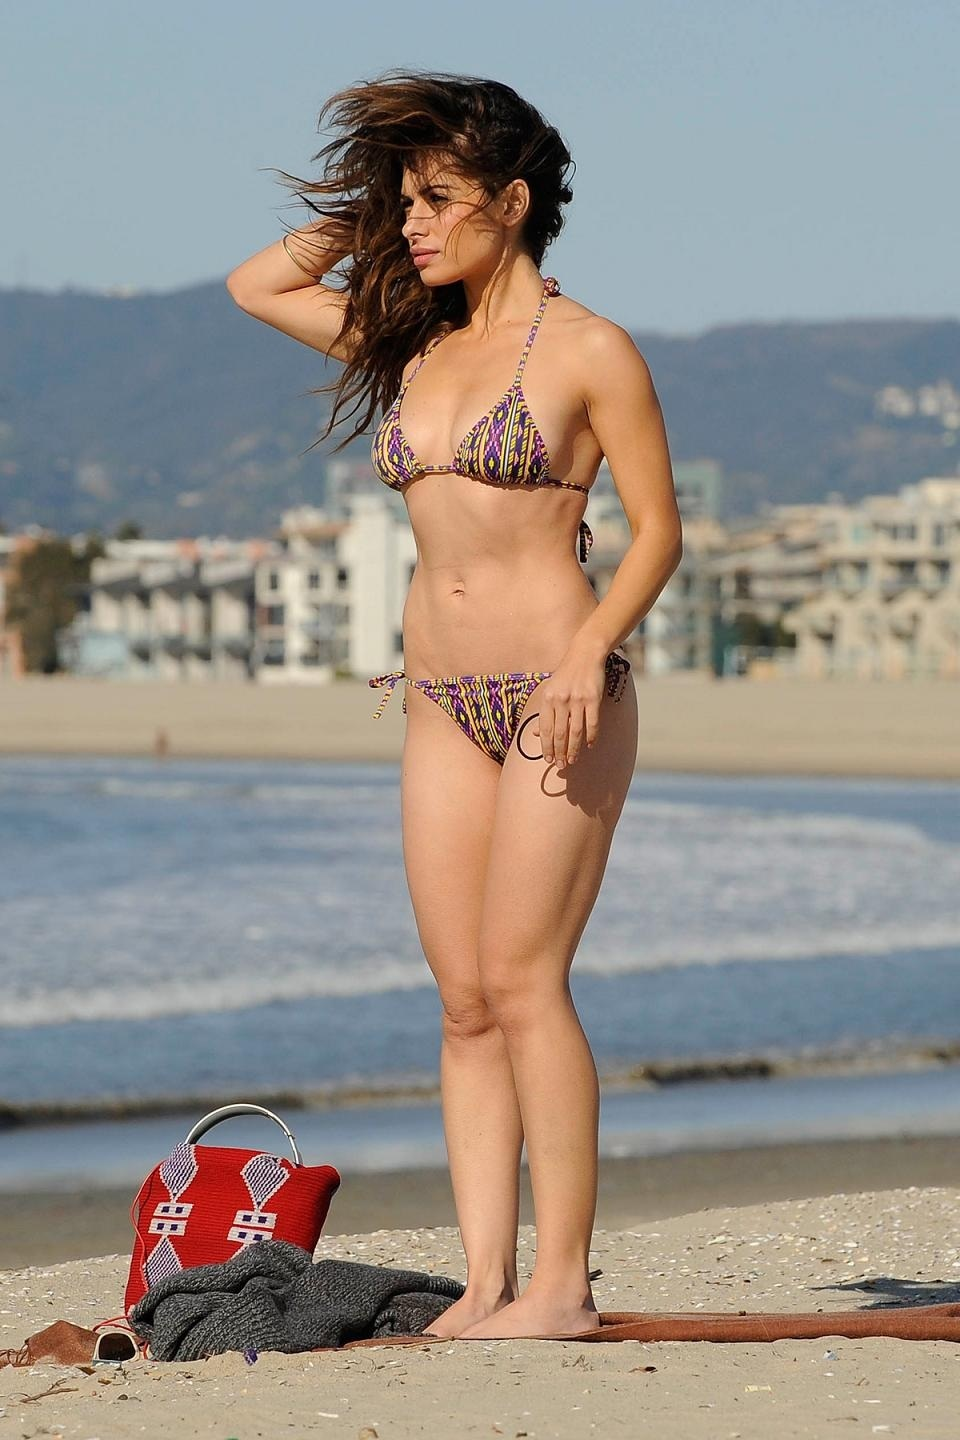 Sarah Shahi Bikini On Beach In Santa Monica Beach